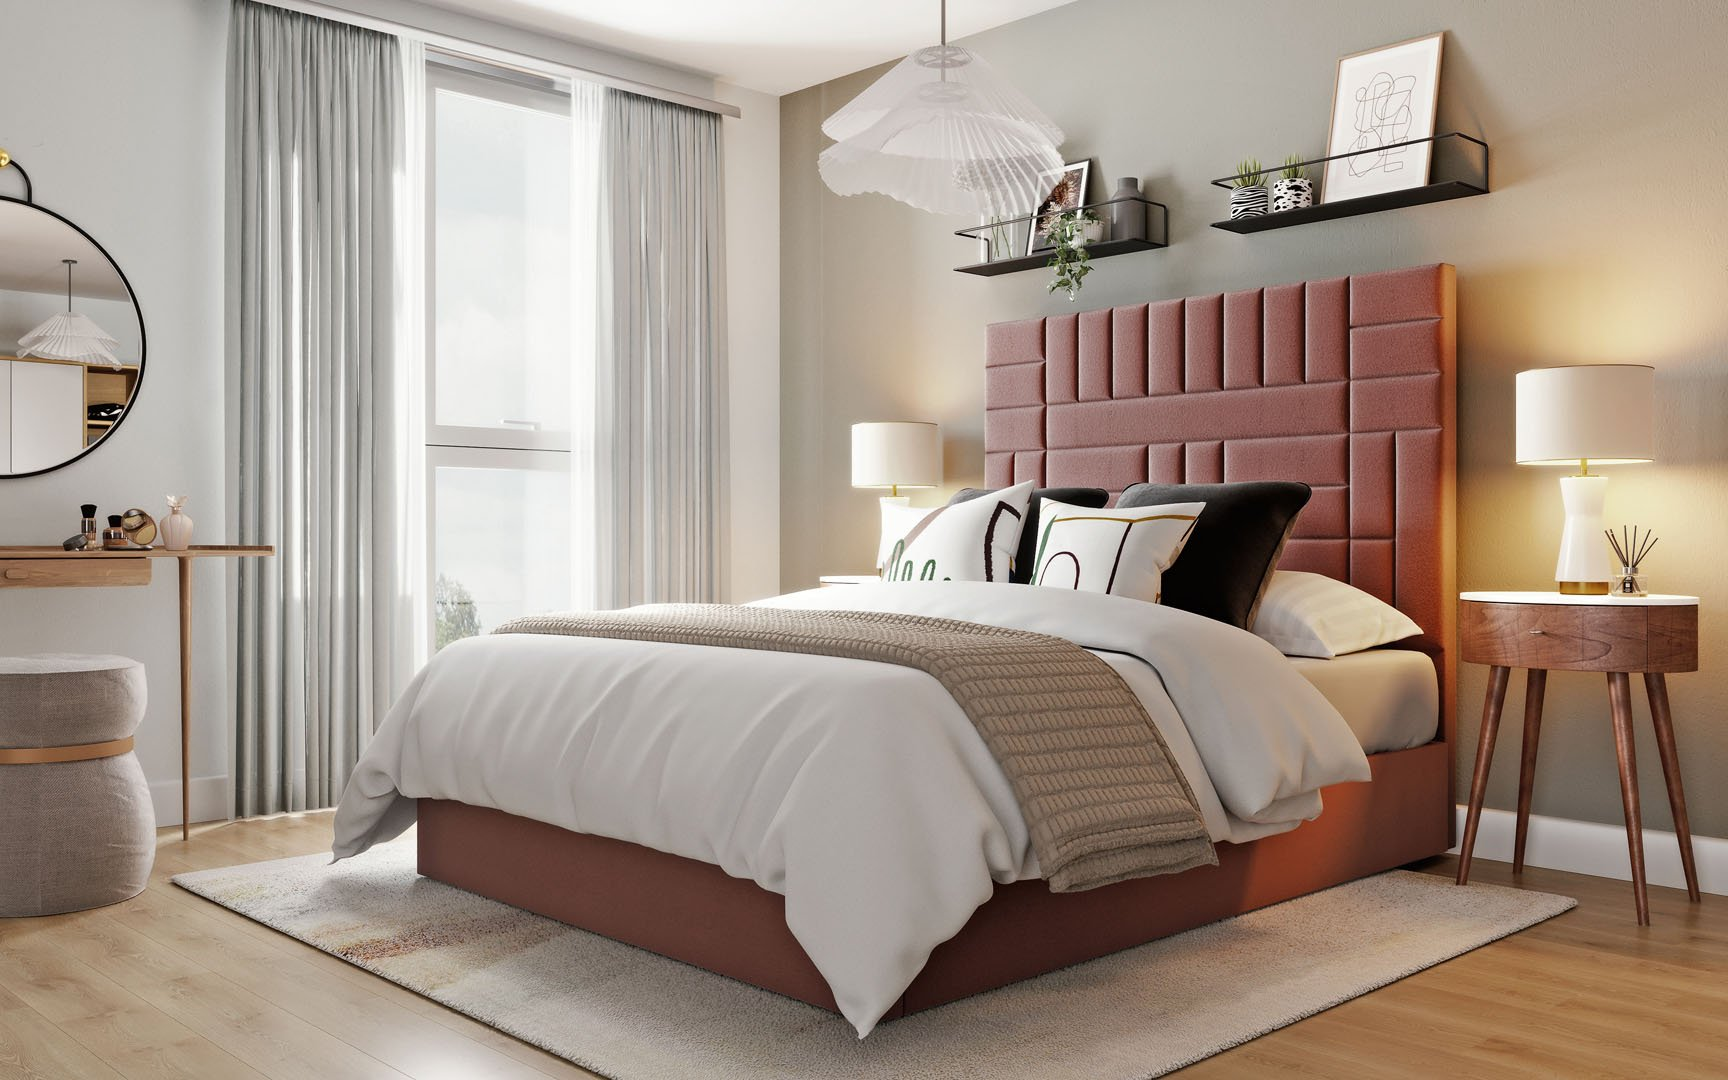 Interior Lifestyle – Bedrooms